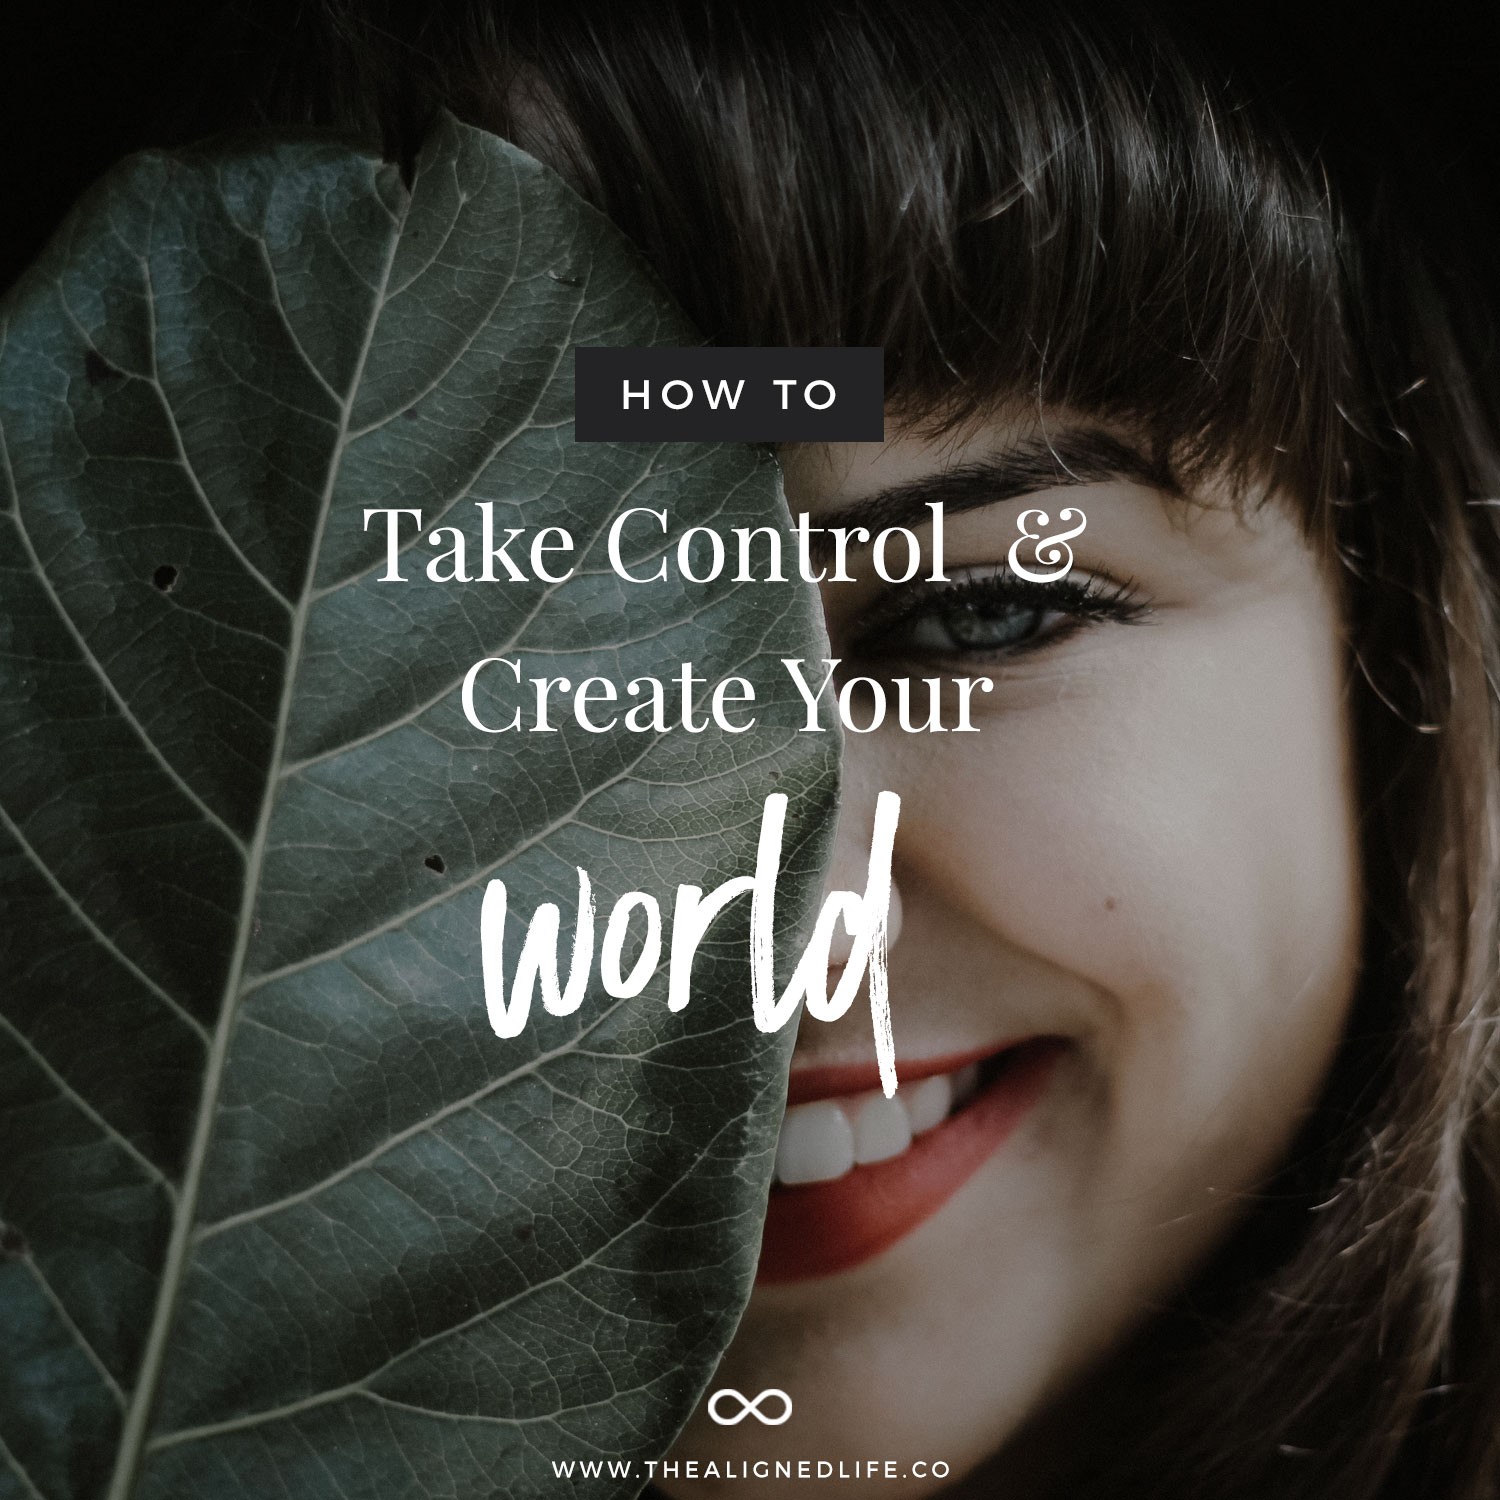 How To Take Control & Create Your World